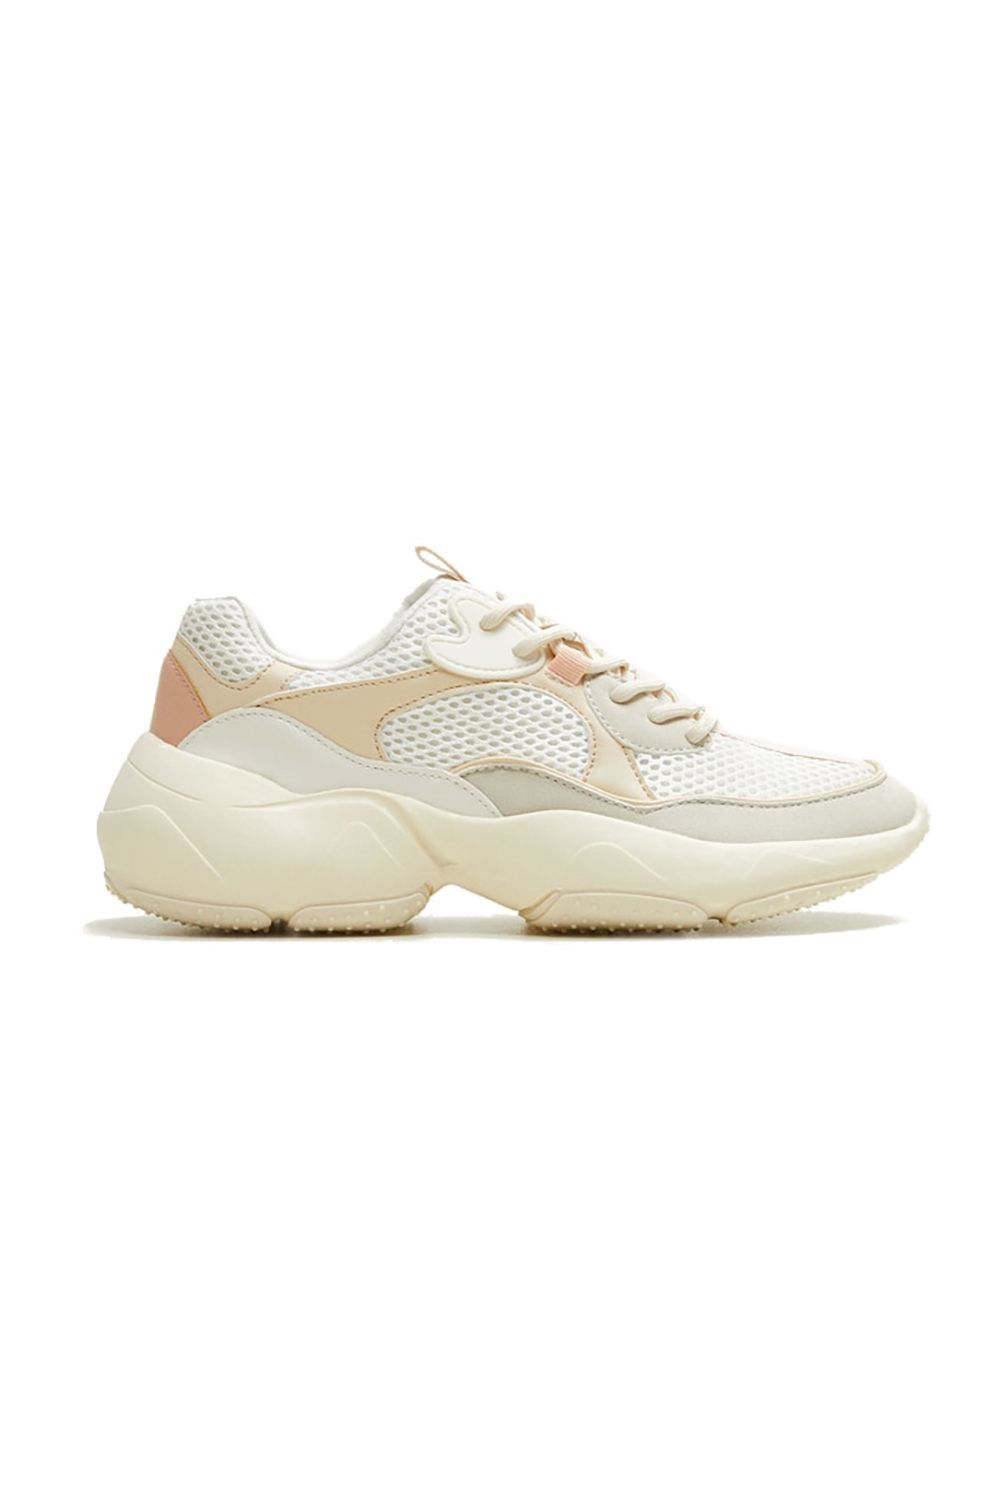 Maxi Sole Sneakers Mango mango.com $79.99 SHOP IT For those seeking a non-stark white sneaker, you'll love this pair from Mango. The cream and peach colors give it a softness and feminine feel compared to darker pairs like black and navy.